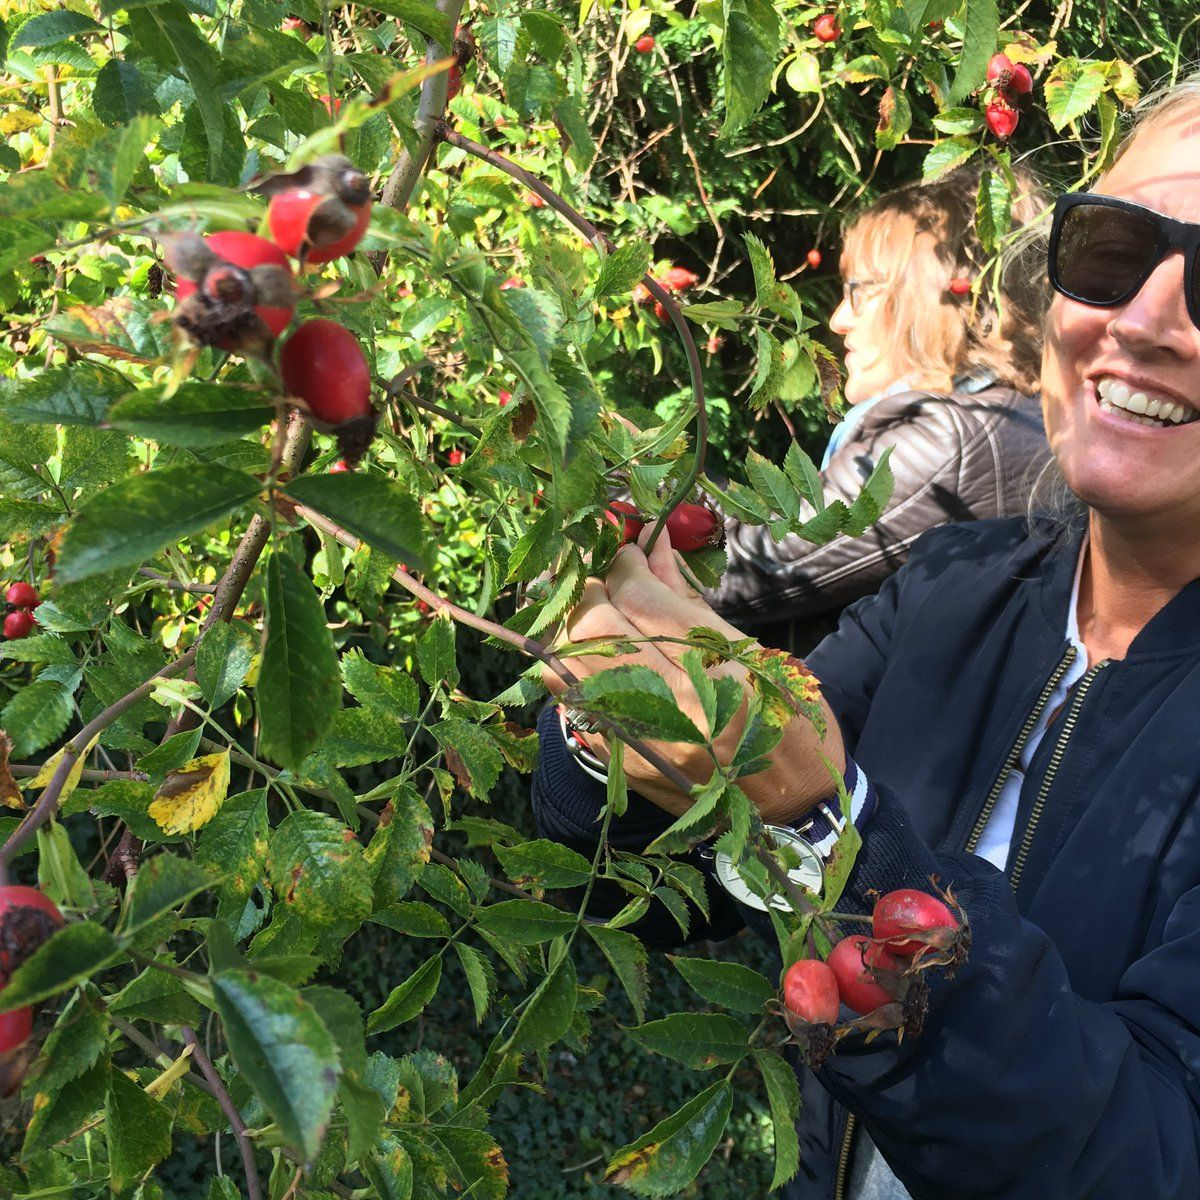 "Amanda Saurin on Twitter: ""Rosehip picking to make our own oil - the closer you are to the plant, the better the product #pureplantpower #asapothyear https://t.co/GdnjGW4hGH"""